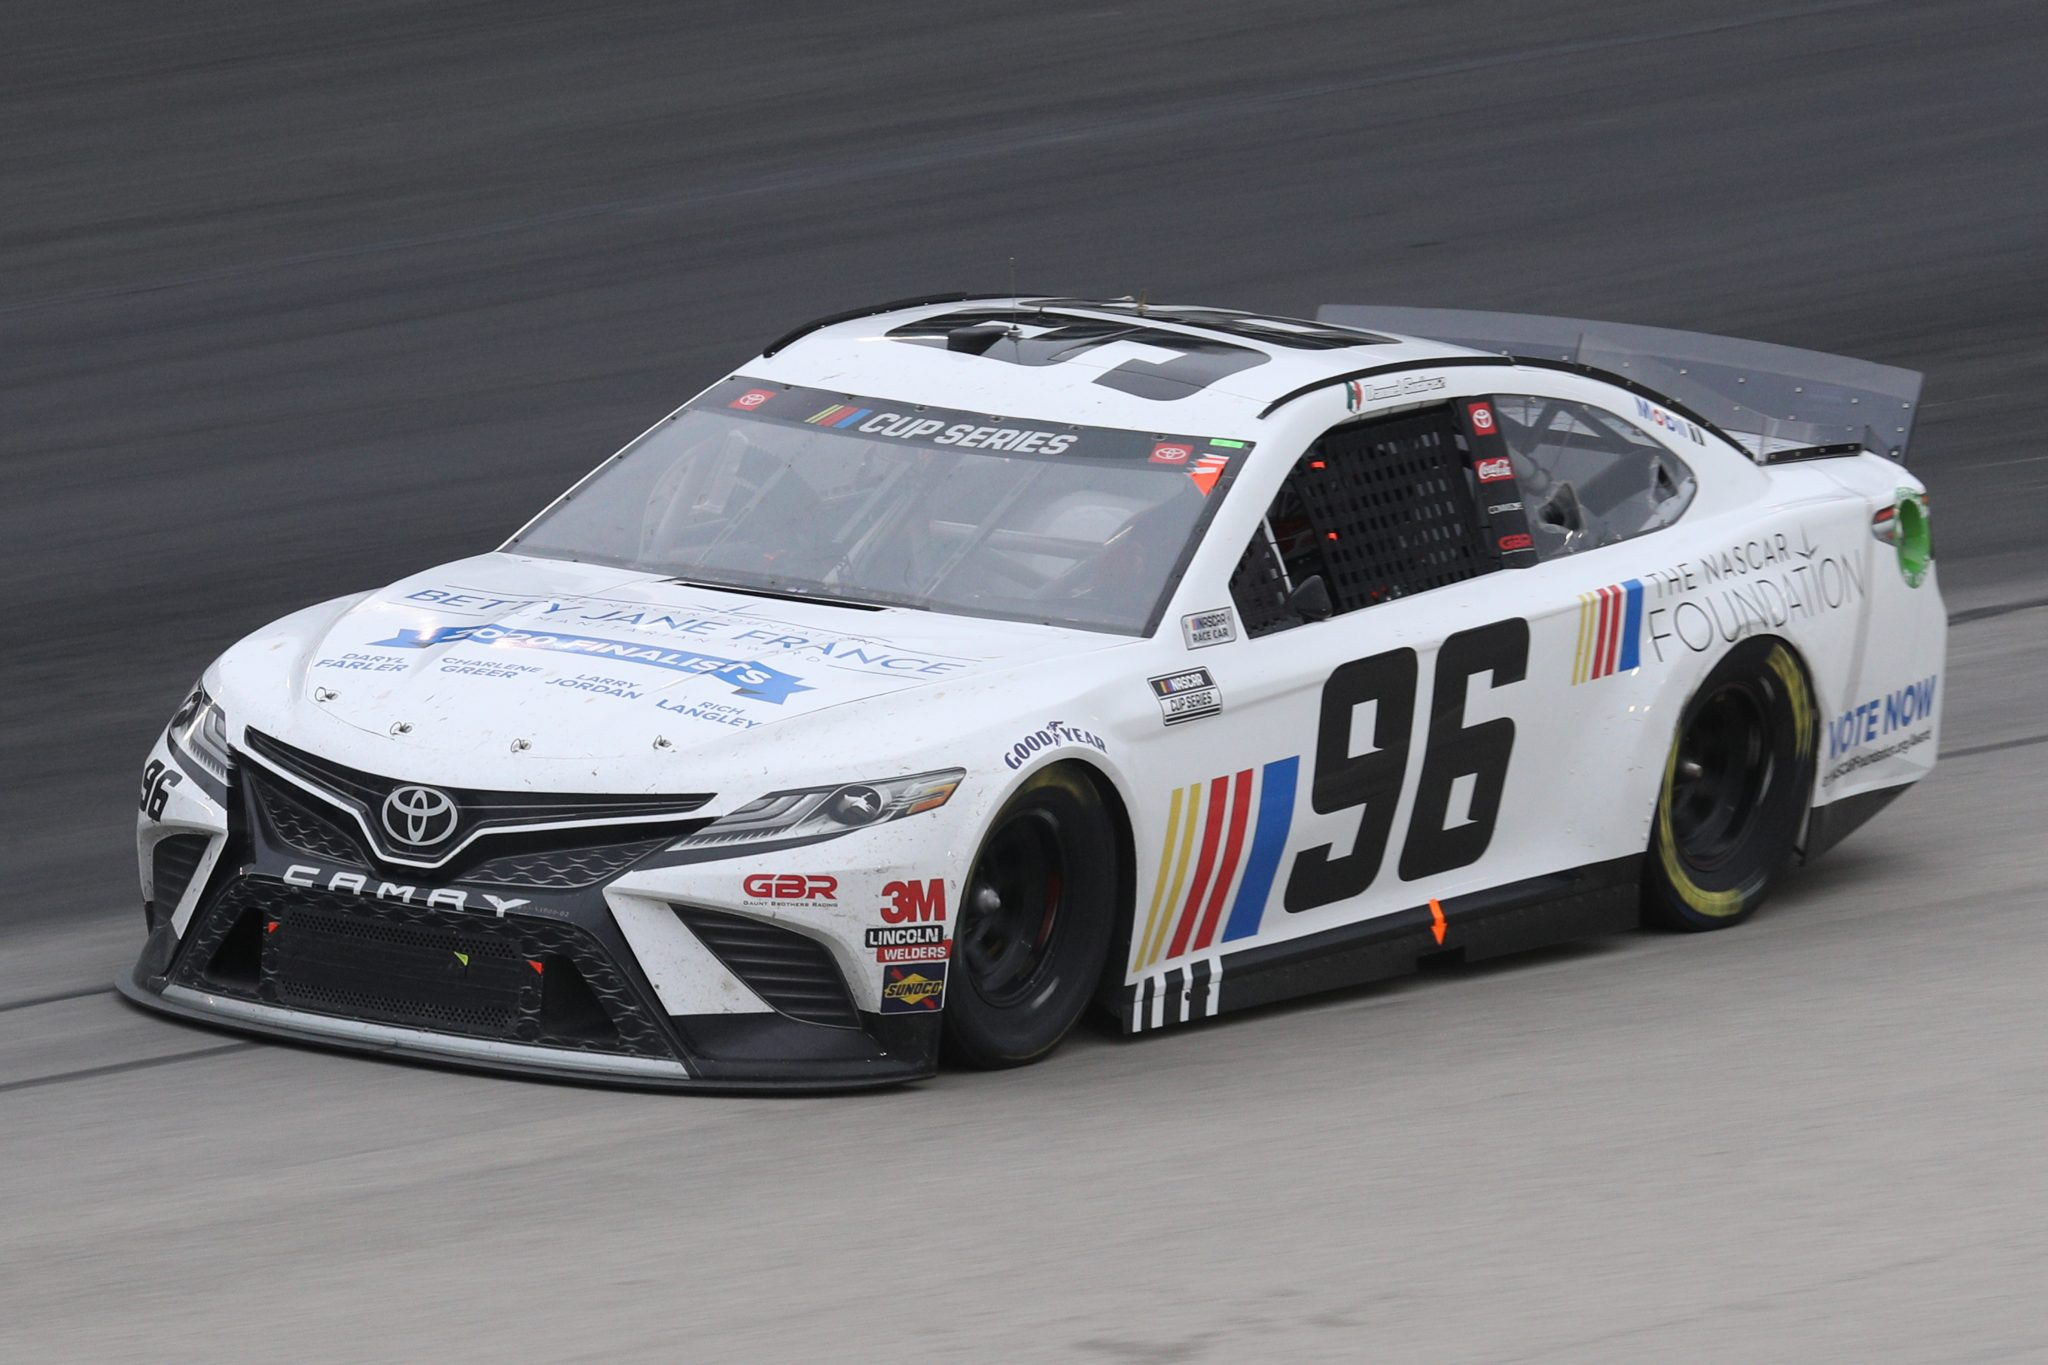 FORT WORTH, TEXAS - OCTOBER 28: Daniel Suarez, driver of the #96 The NASCAR Foundation Toyota, drives during the NASCAR Cup Series Autotrader EchoPark Automotive 500 at Texas Motor Speedway on October 28, 2020 in Fort Worth, Texas. (Photo by Chris Graythen/Getty Images) | Getty Images